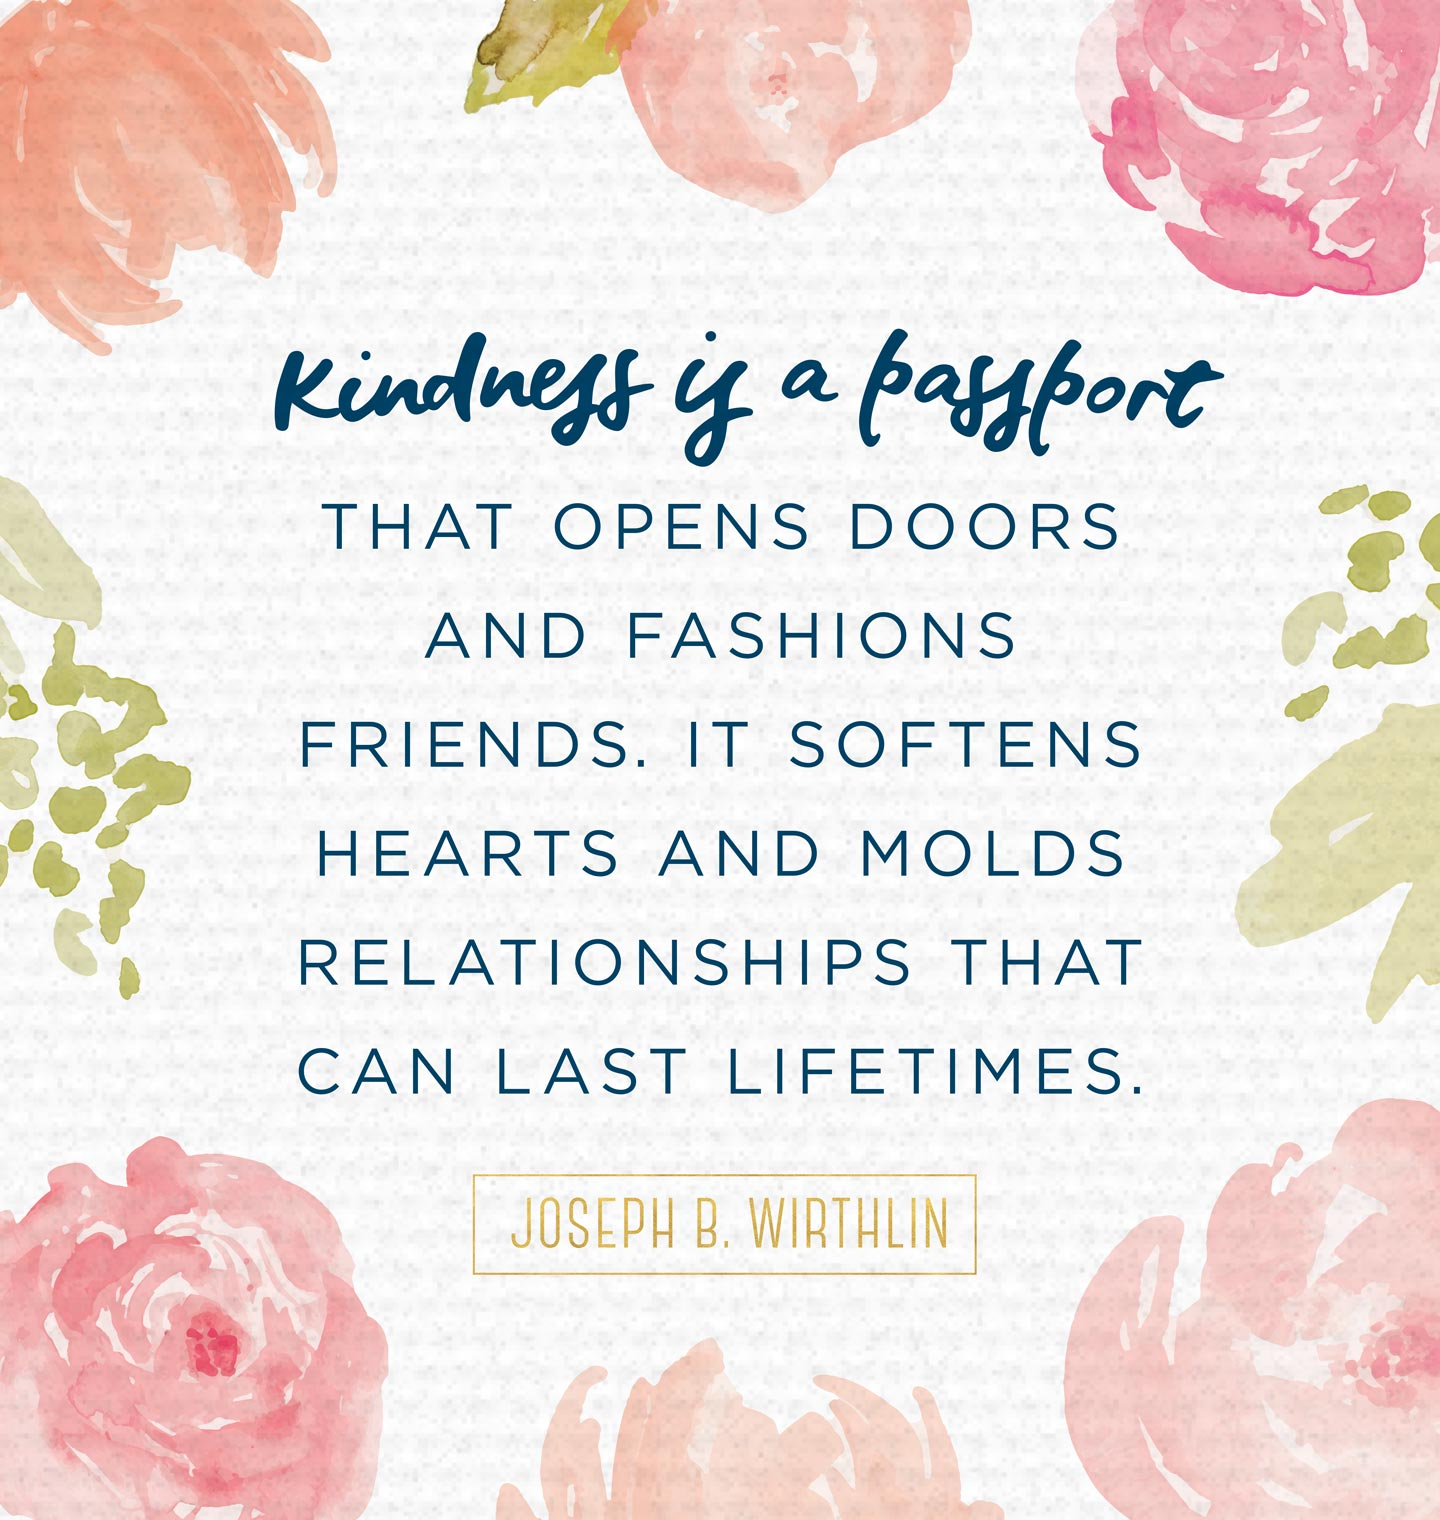 Inspirational Quotes For Kindness Day: Kindness Is A Passport…